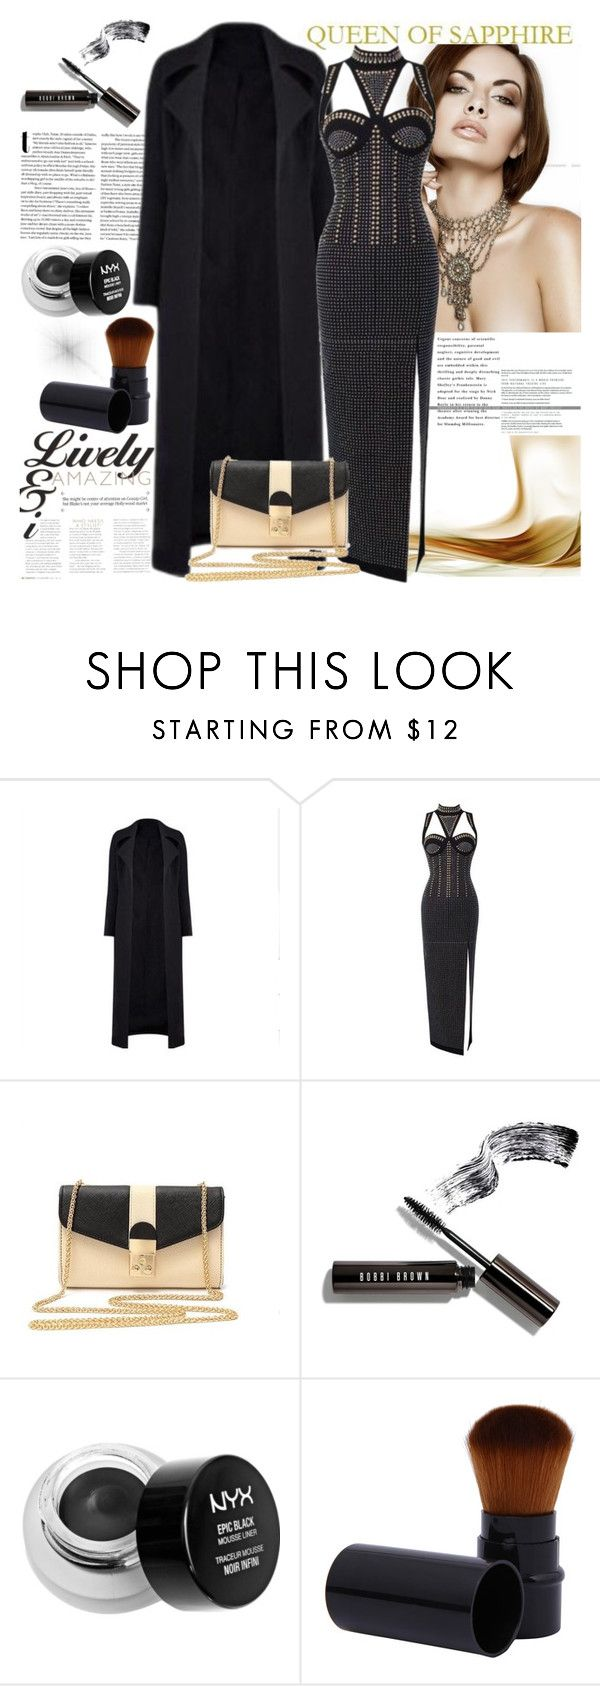 """QUEEN OF SAPPHIRE"" by gaby-mil ❤ liked on Polyvore featuring Bobbi Brown Cosmetics, NYX and queenofsapphire"